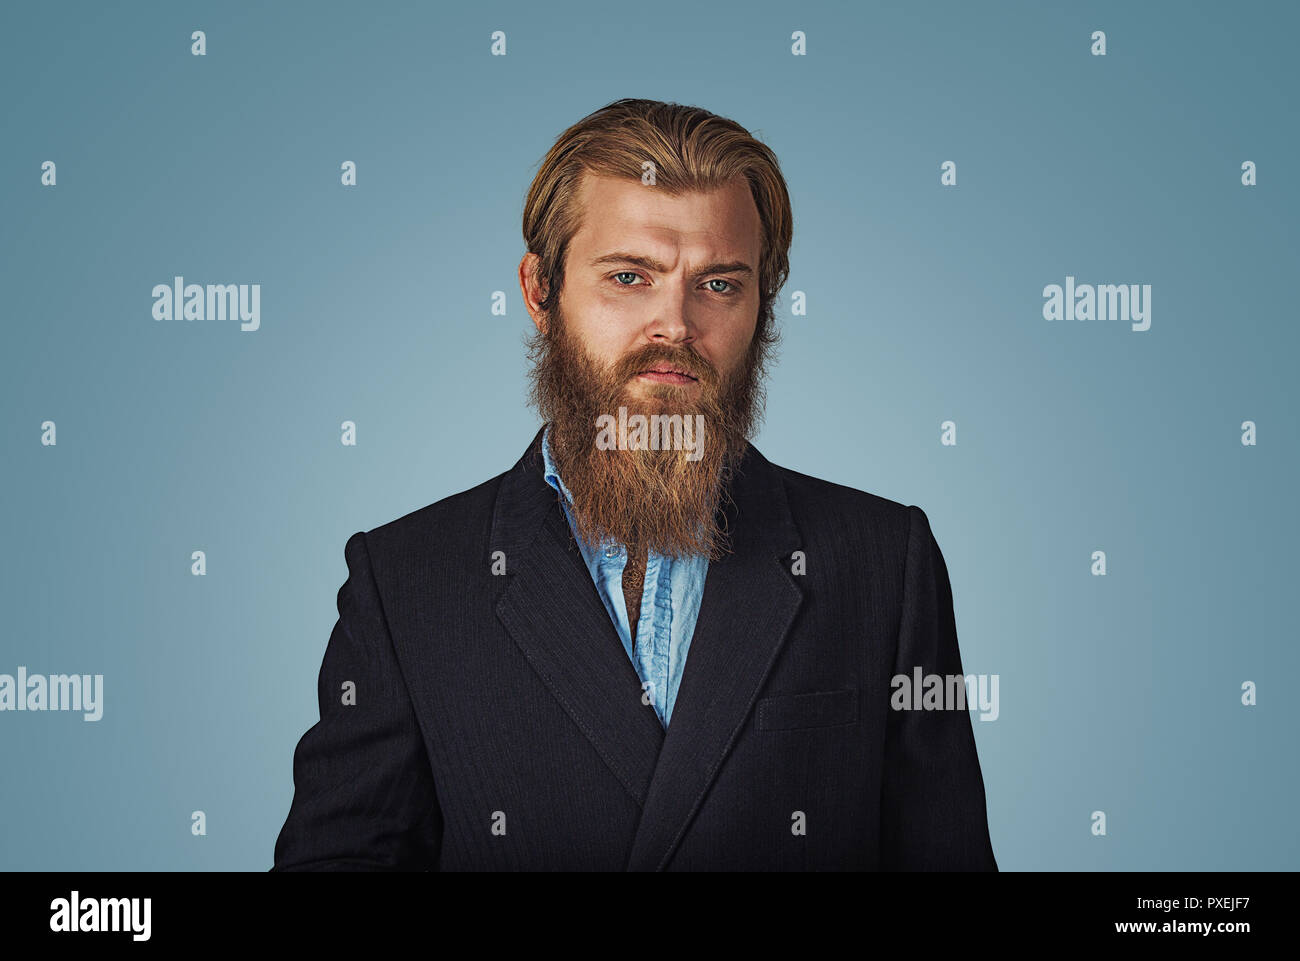 da7f786598a Bearded hipster businessman serious man looking at you camera Isolated on  blue Background. Negative face